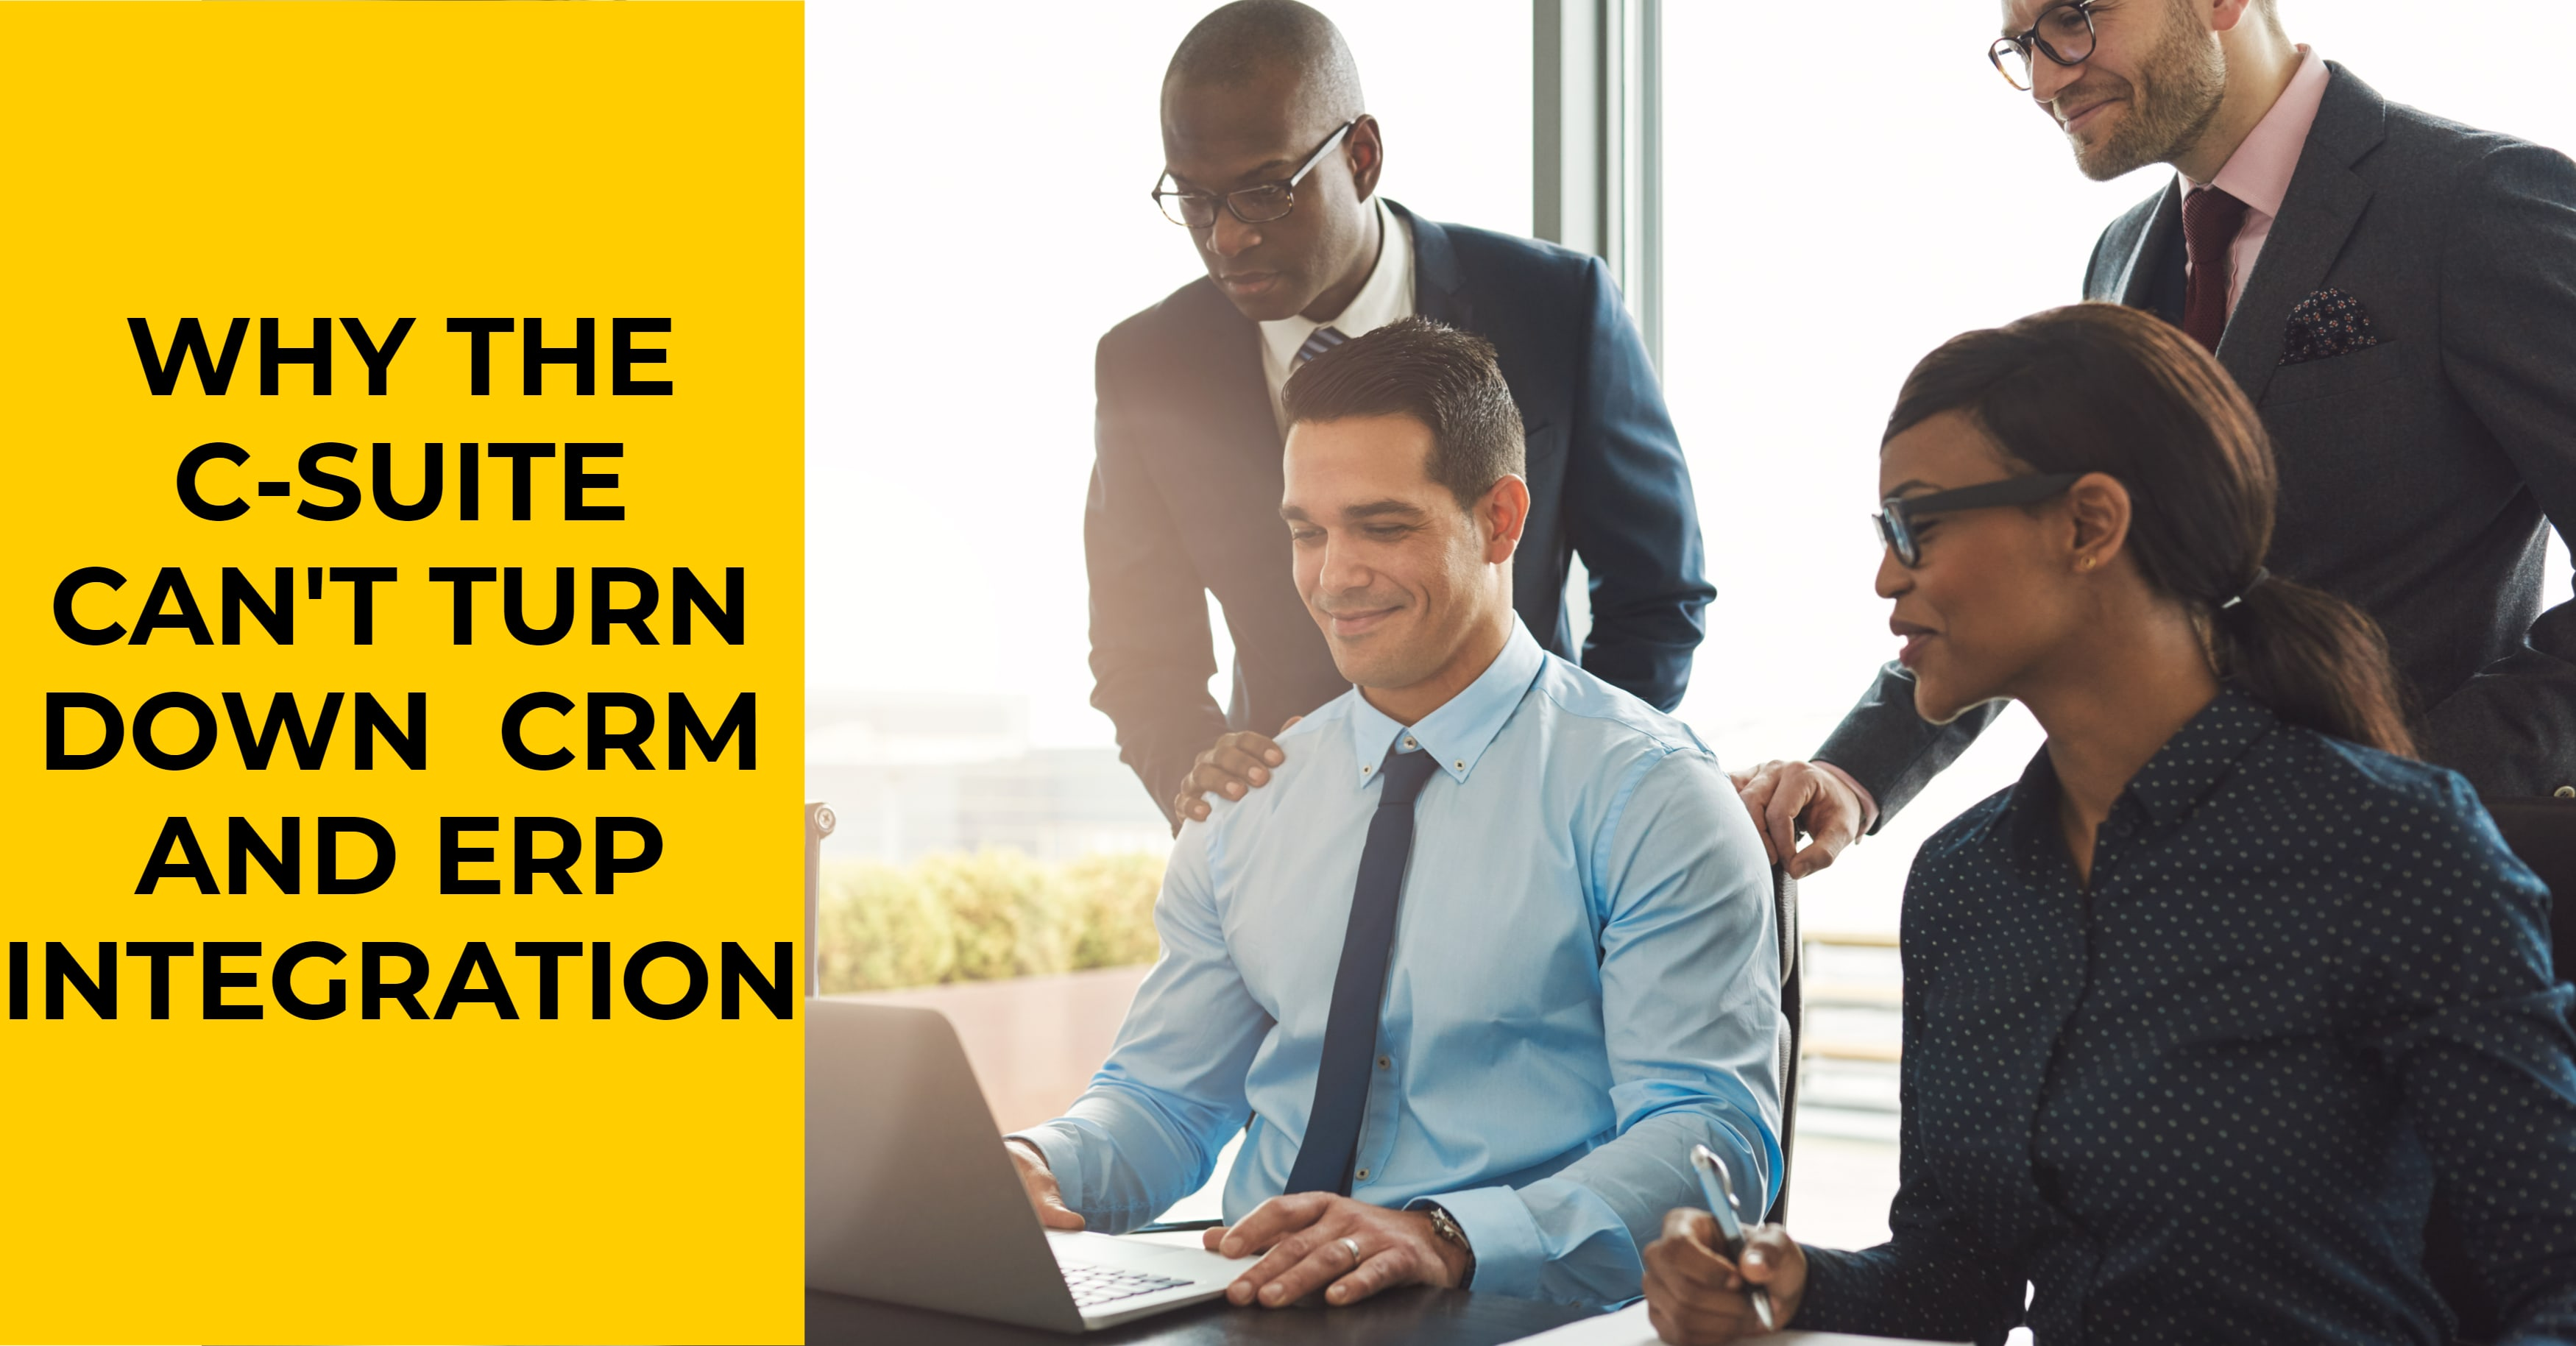 Why the C-Suite Can't Turn Down CRM and ERP Integration